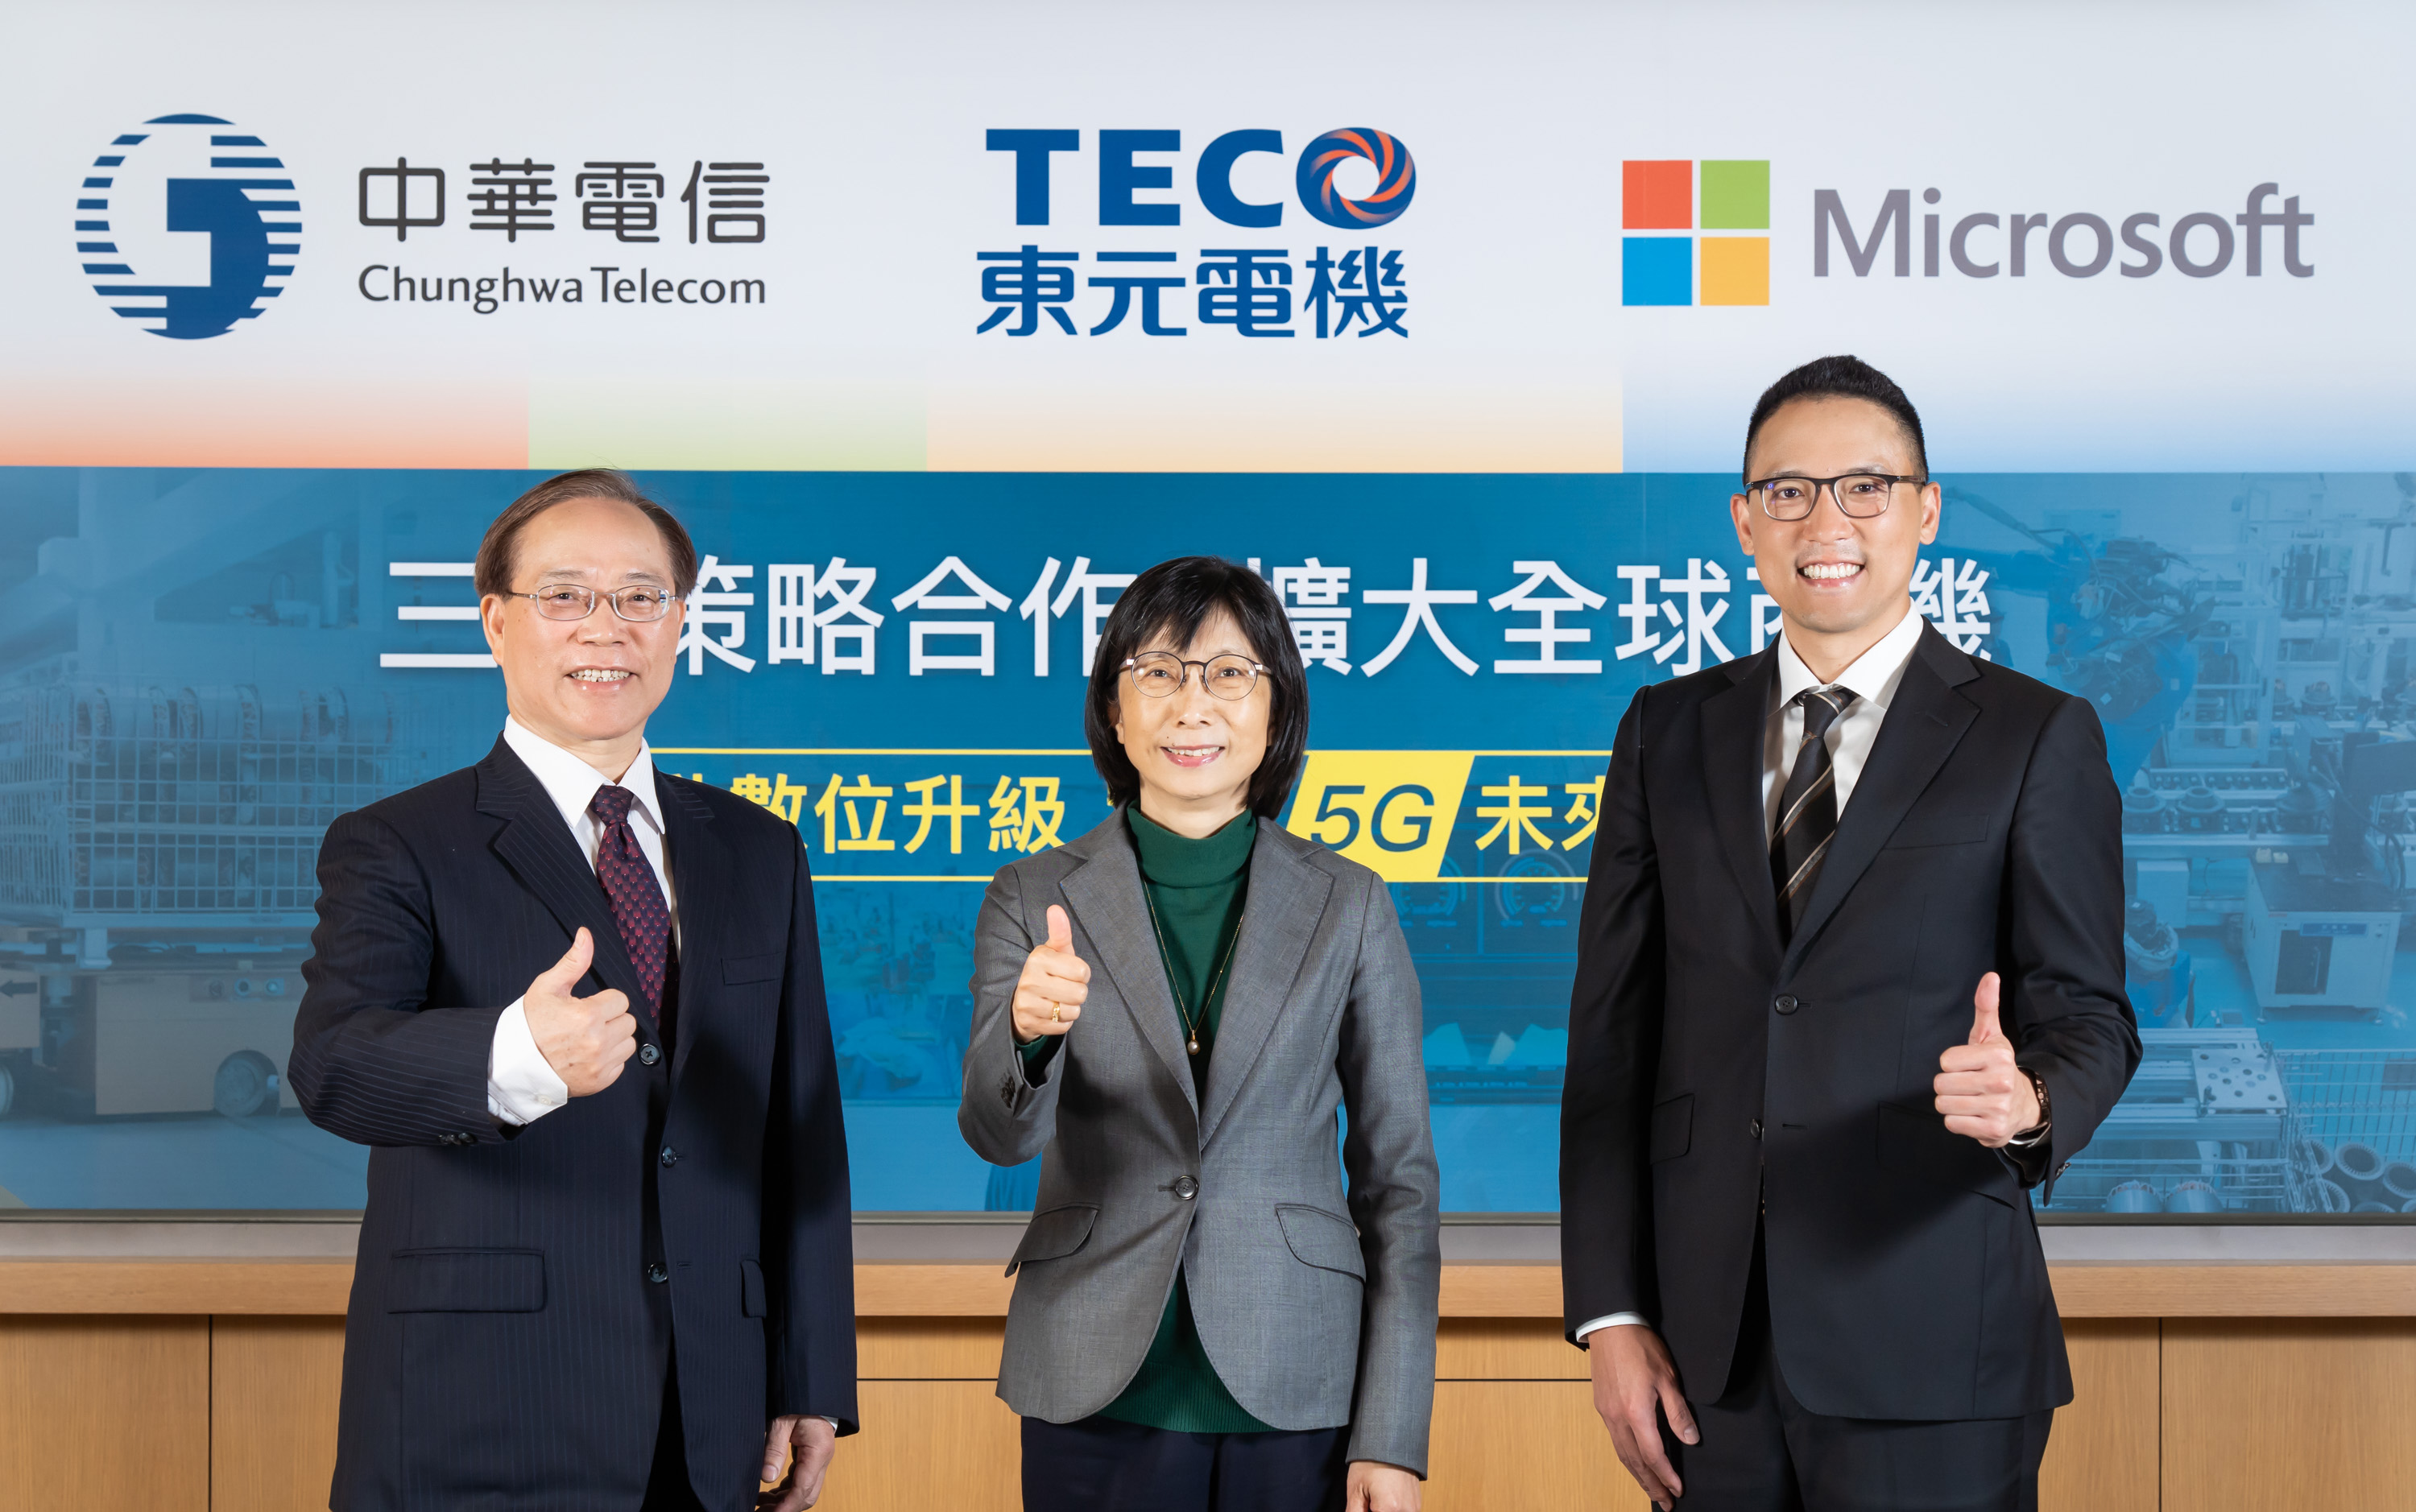 TECO Signs MOU With Chunghwa Telecom and Microsoft Taiwan for Pushing Industrial Digital Upgrading